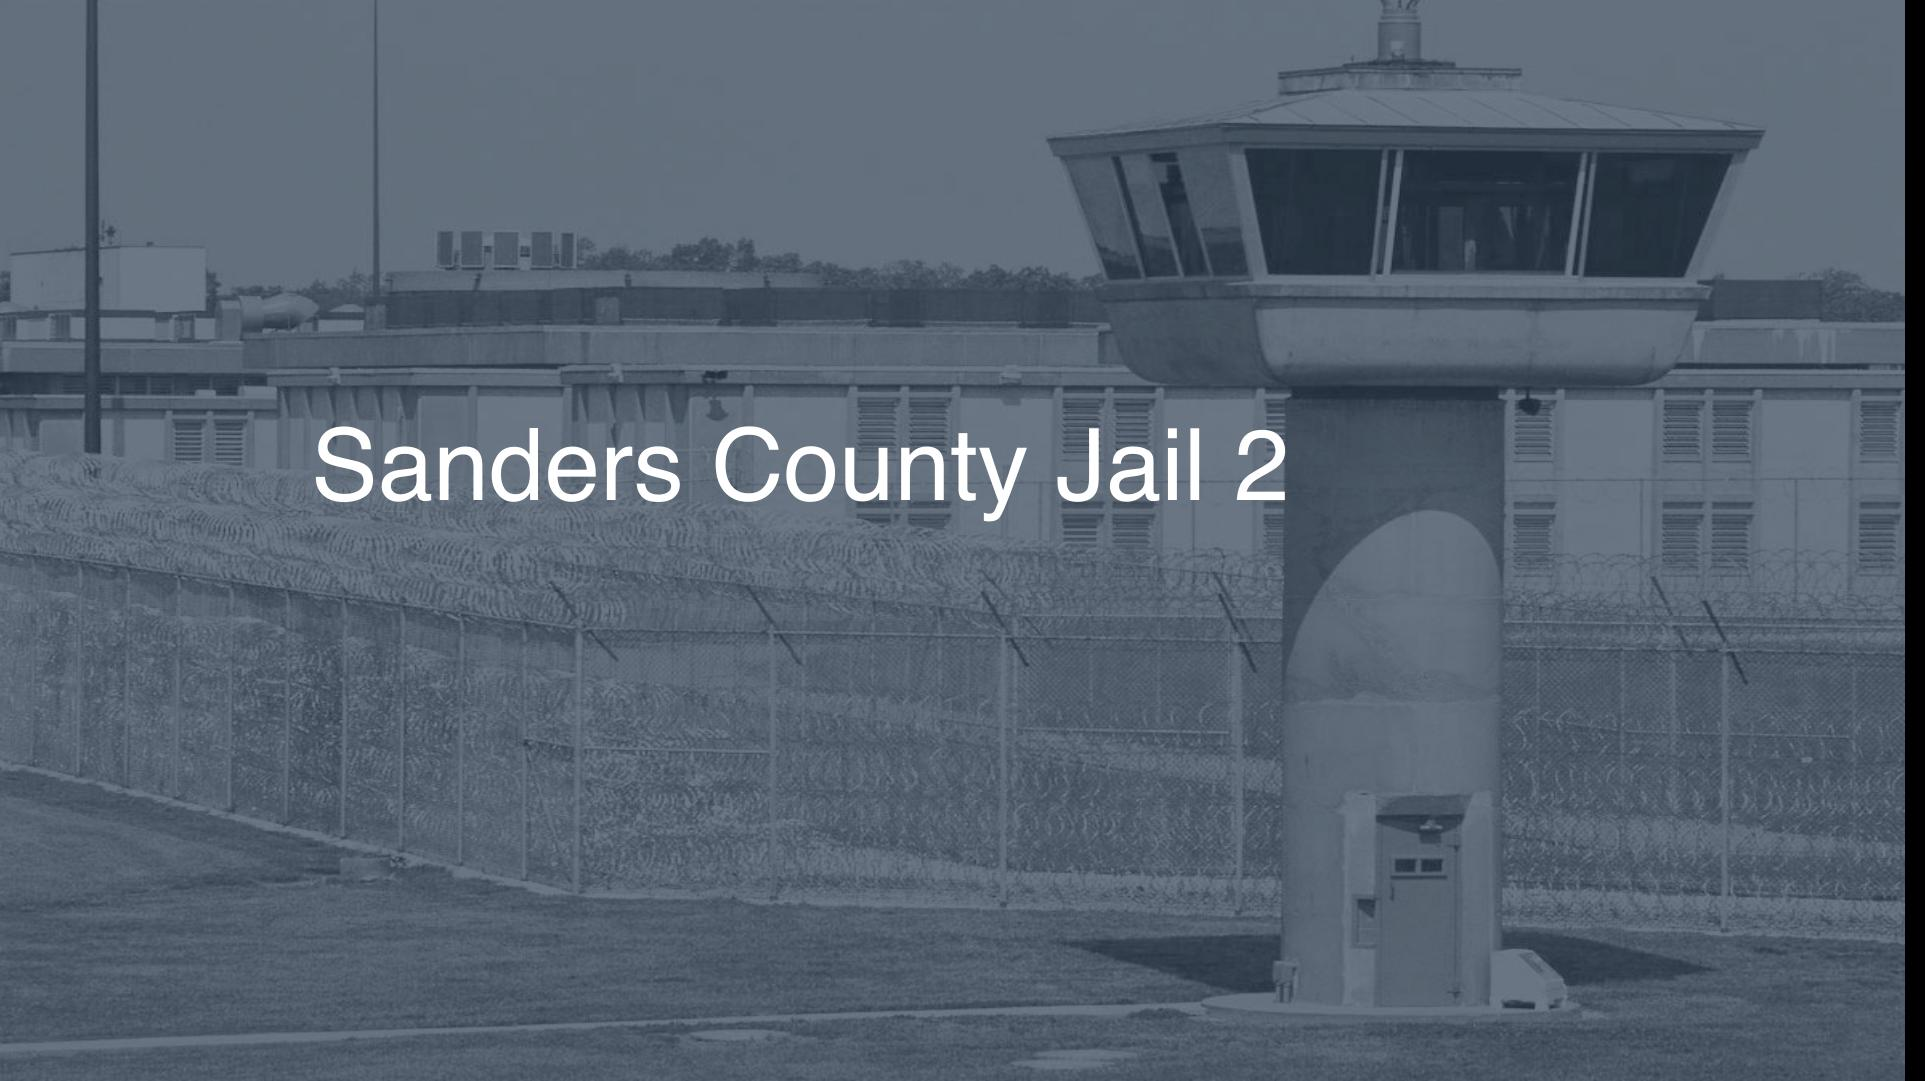 Sanders County Jail correctional facility picture